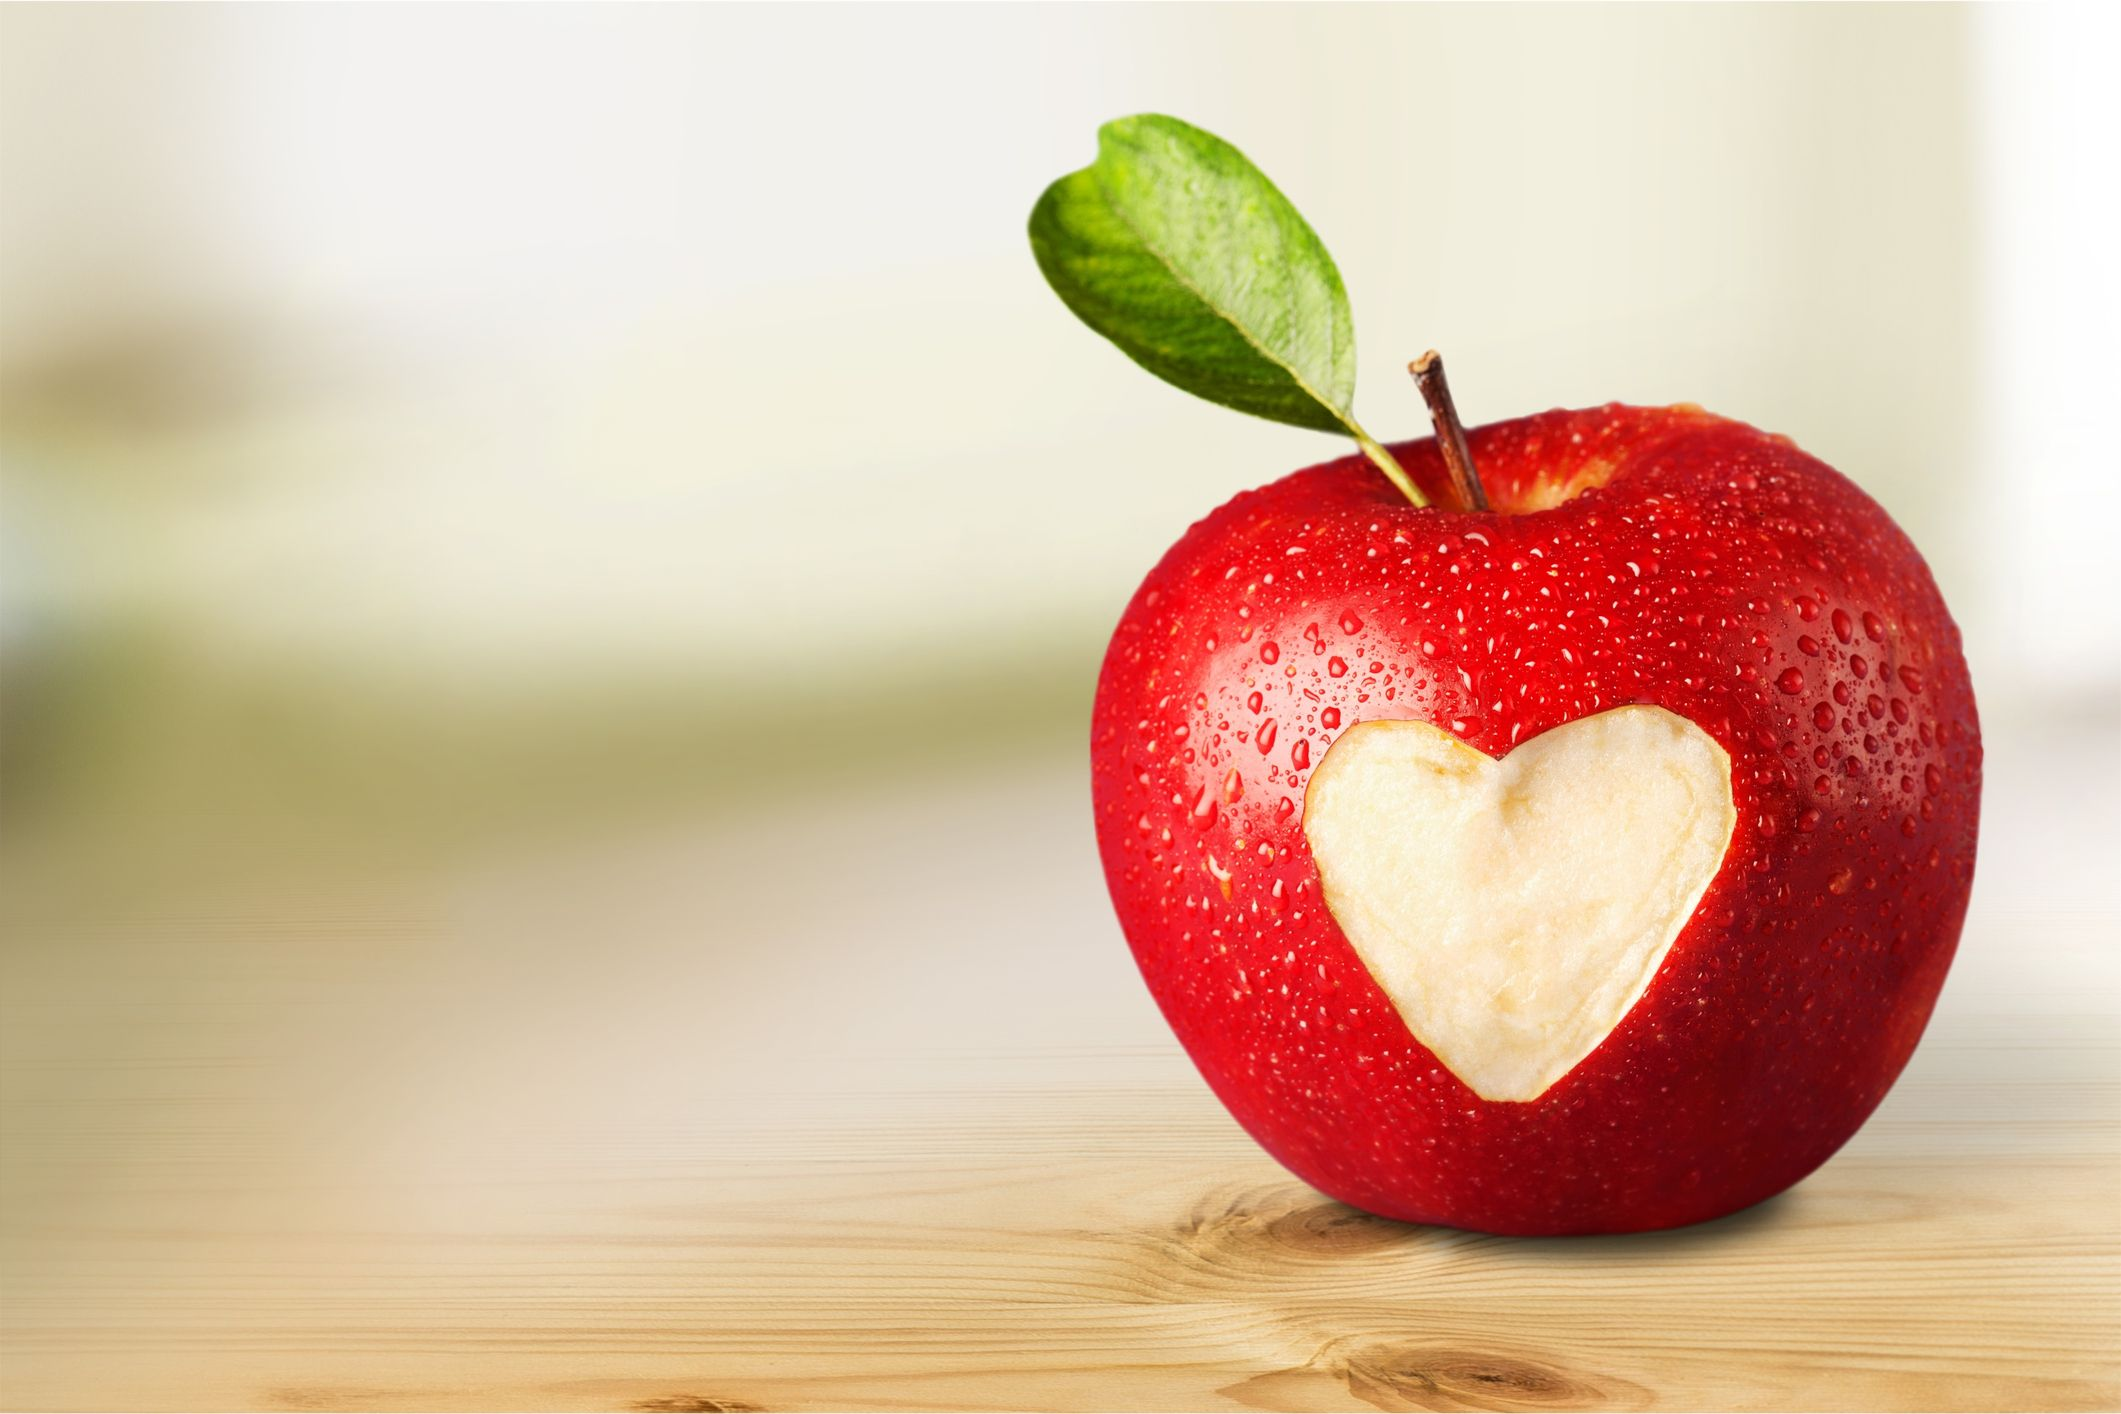 Will an apple a day keep the doctor at bay?